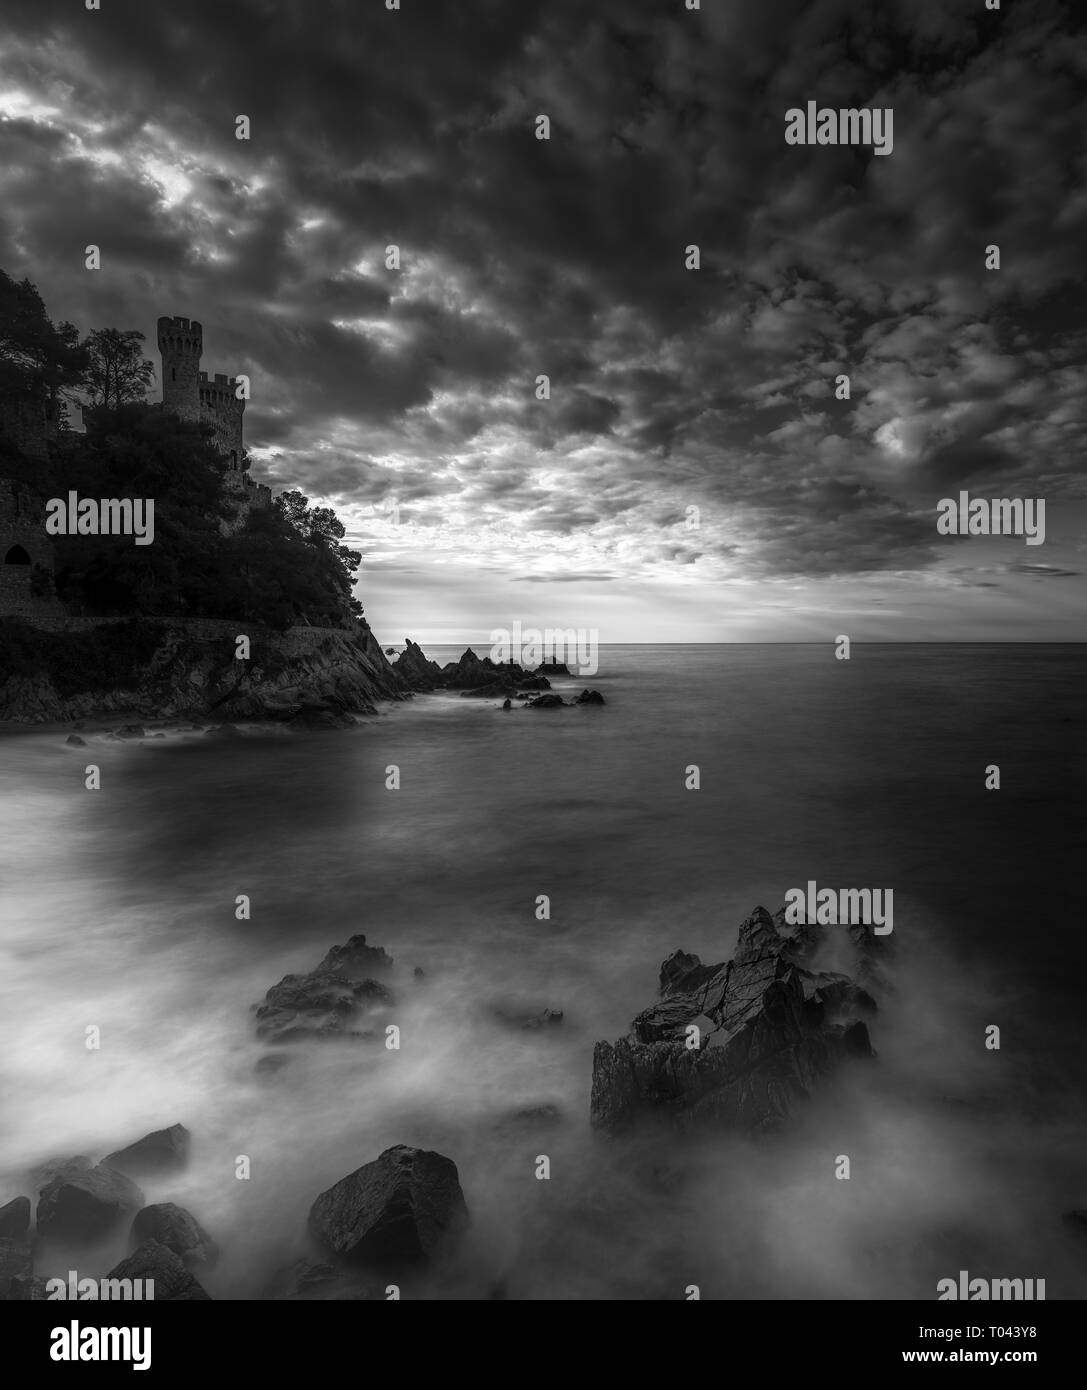 Black and white, long exposure capture of castle on a hill by the sea, Cala Frares, Lloret de Mar, Spain - Stock Image